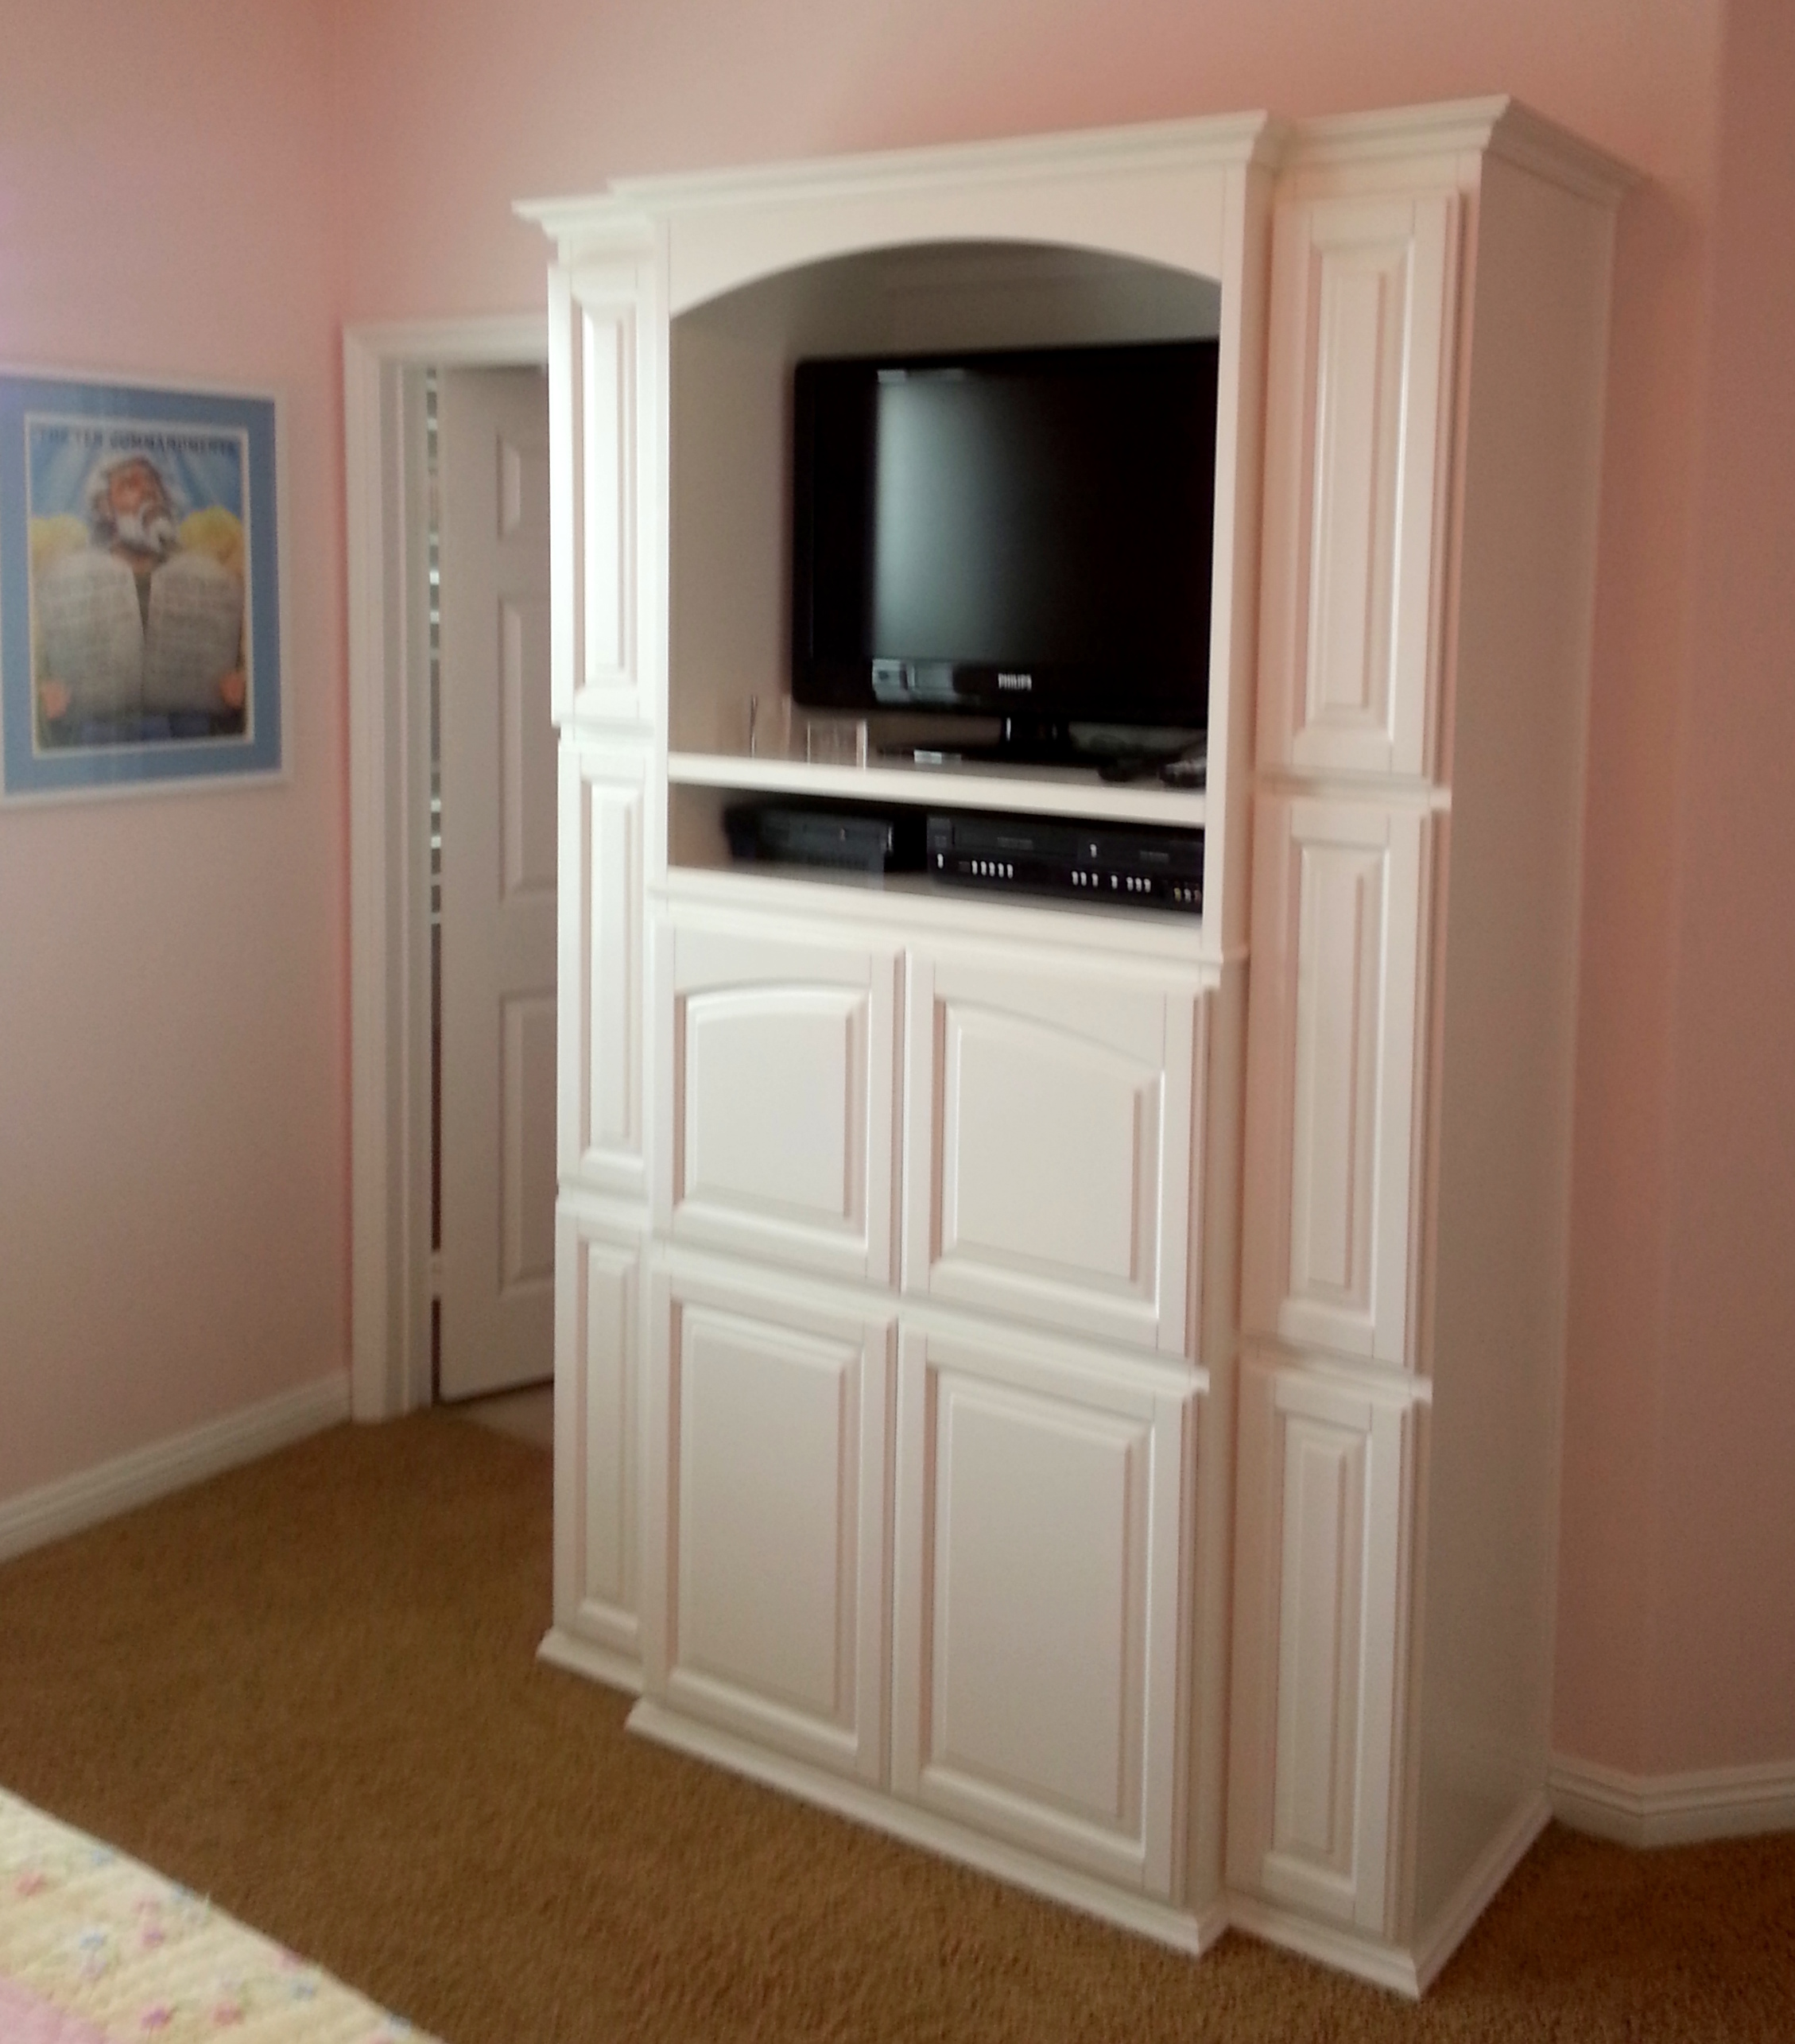 Bedroom Built In Cabinet Design 1 Bedroom Apartment Decorating Ideas Newlywed Bedroom Decor Bedroom Sets With Poles: Built In Cabinets In Bedroom In Mission Viejo